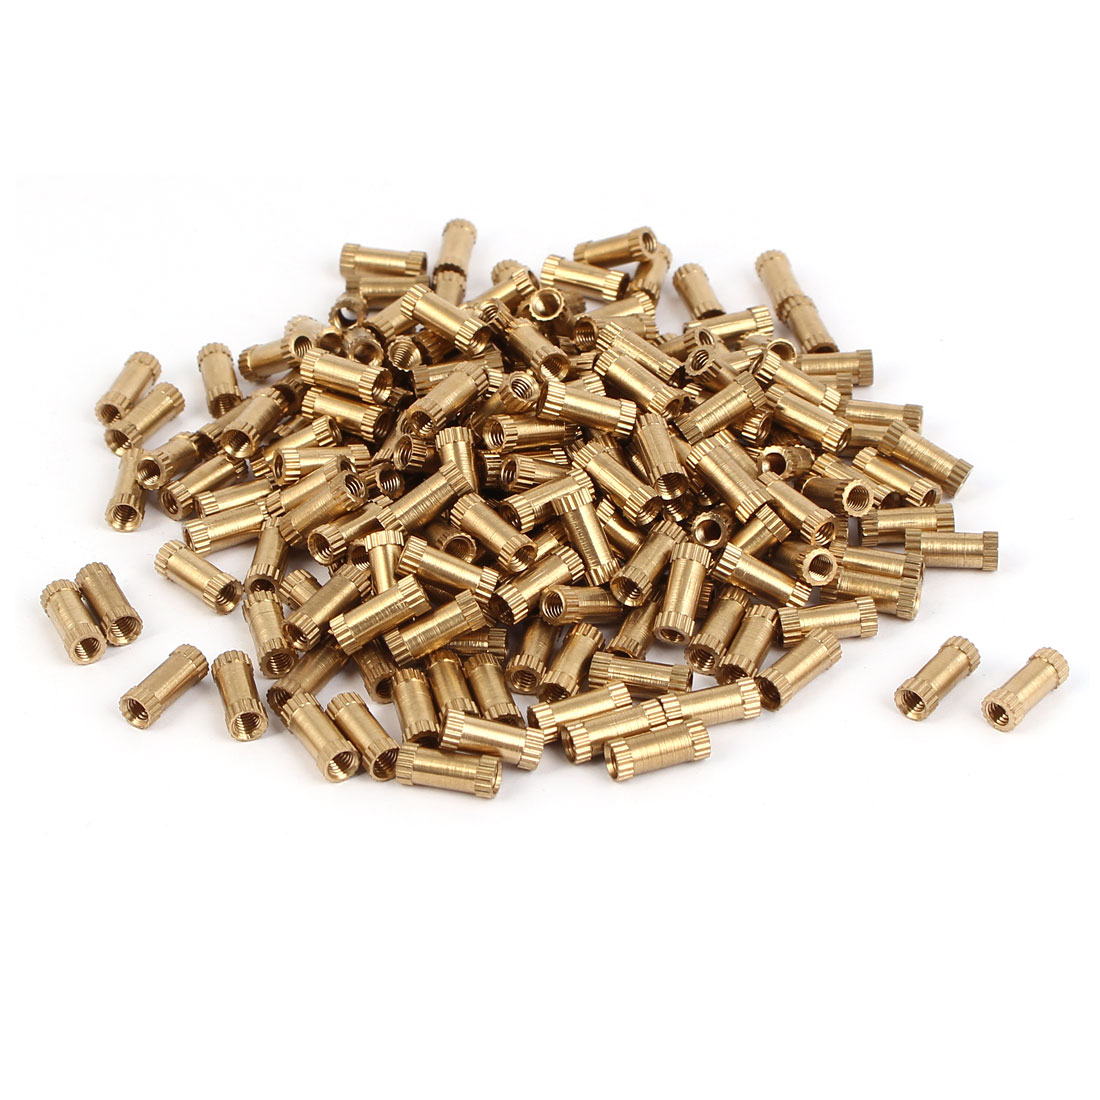 M3 x 10mm Brass Cylinder Injection Molding Knurled Insert Embedded Nuts 200PCS